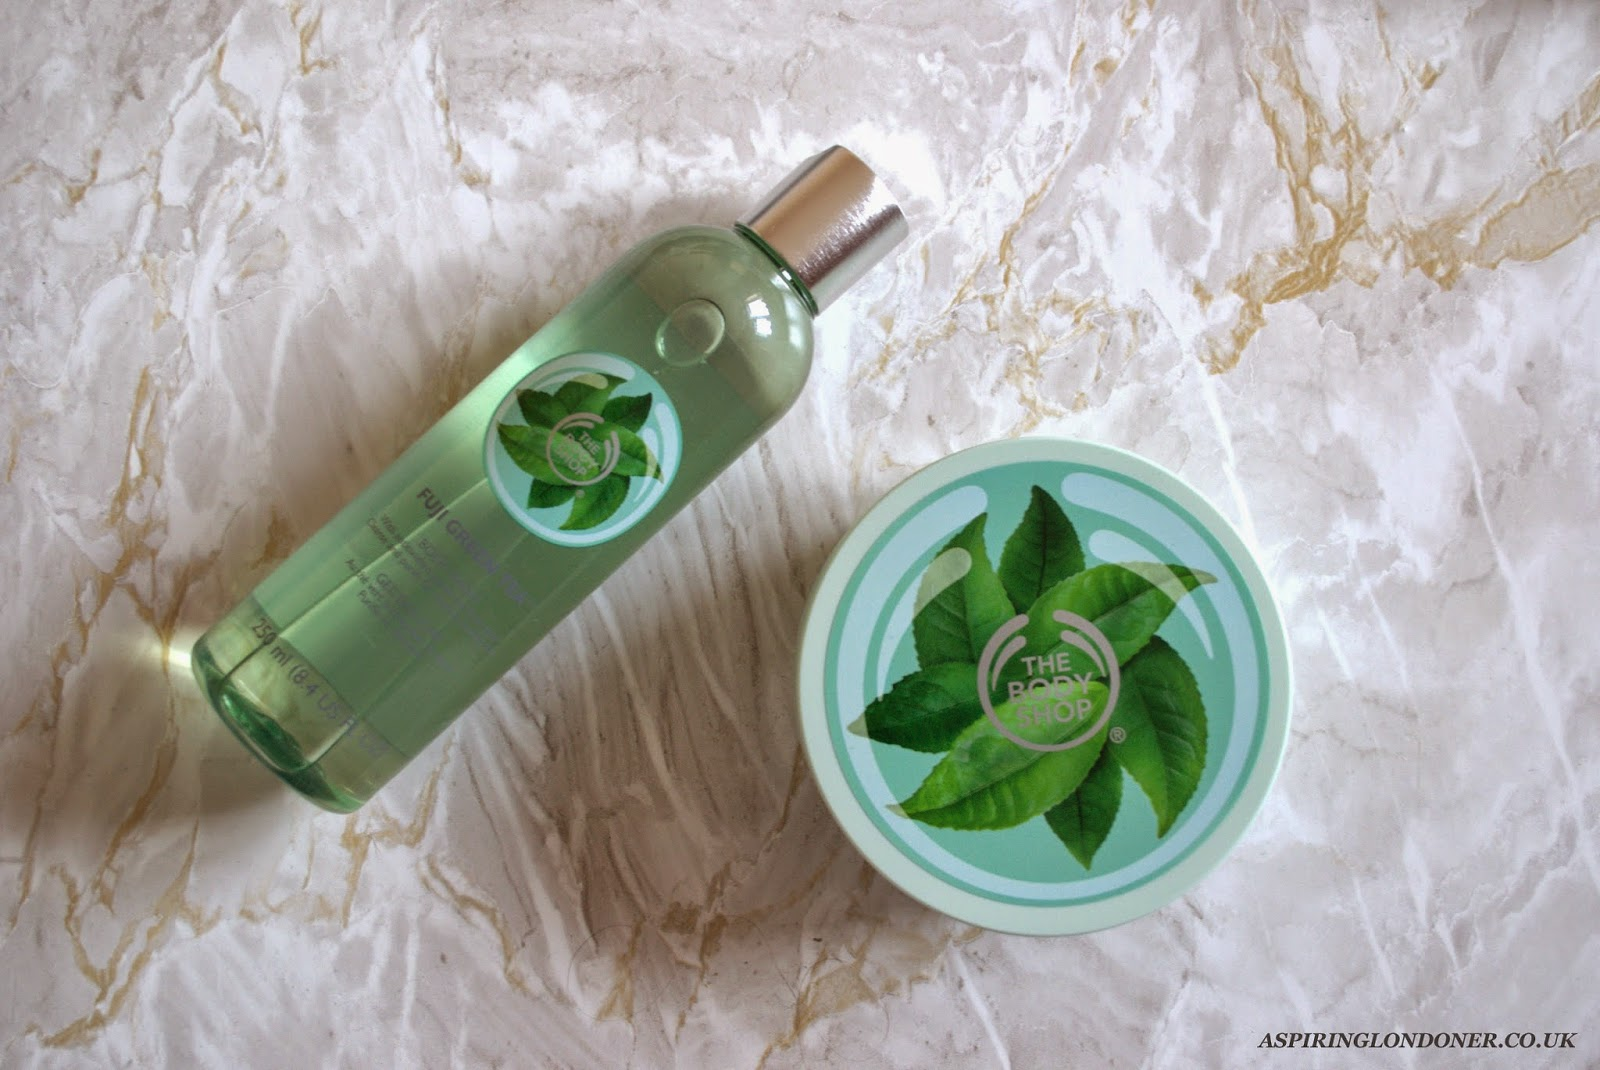 The Body Shop Fuji Green Tea Body Butter & Shower Gel Review - Aspiring Londoner